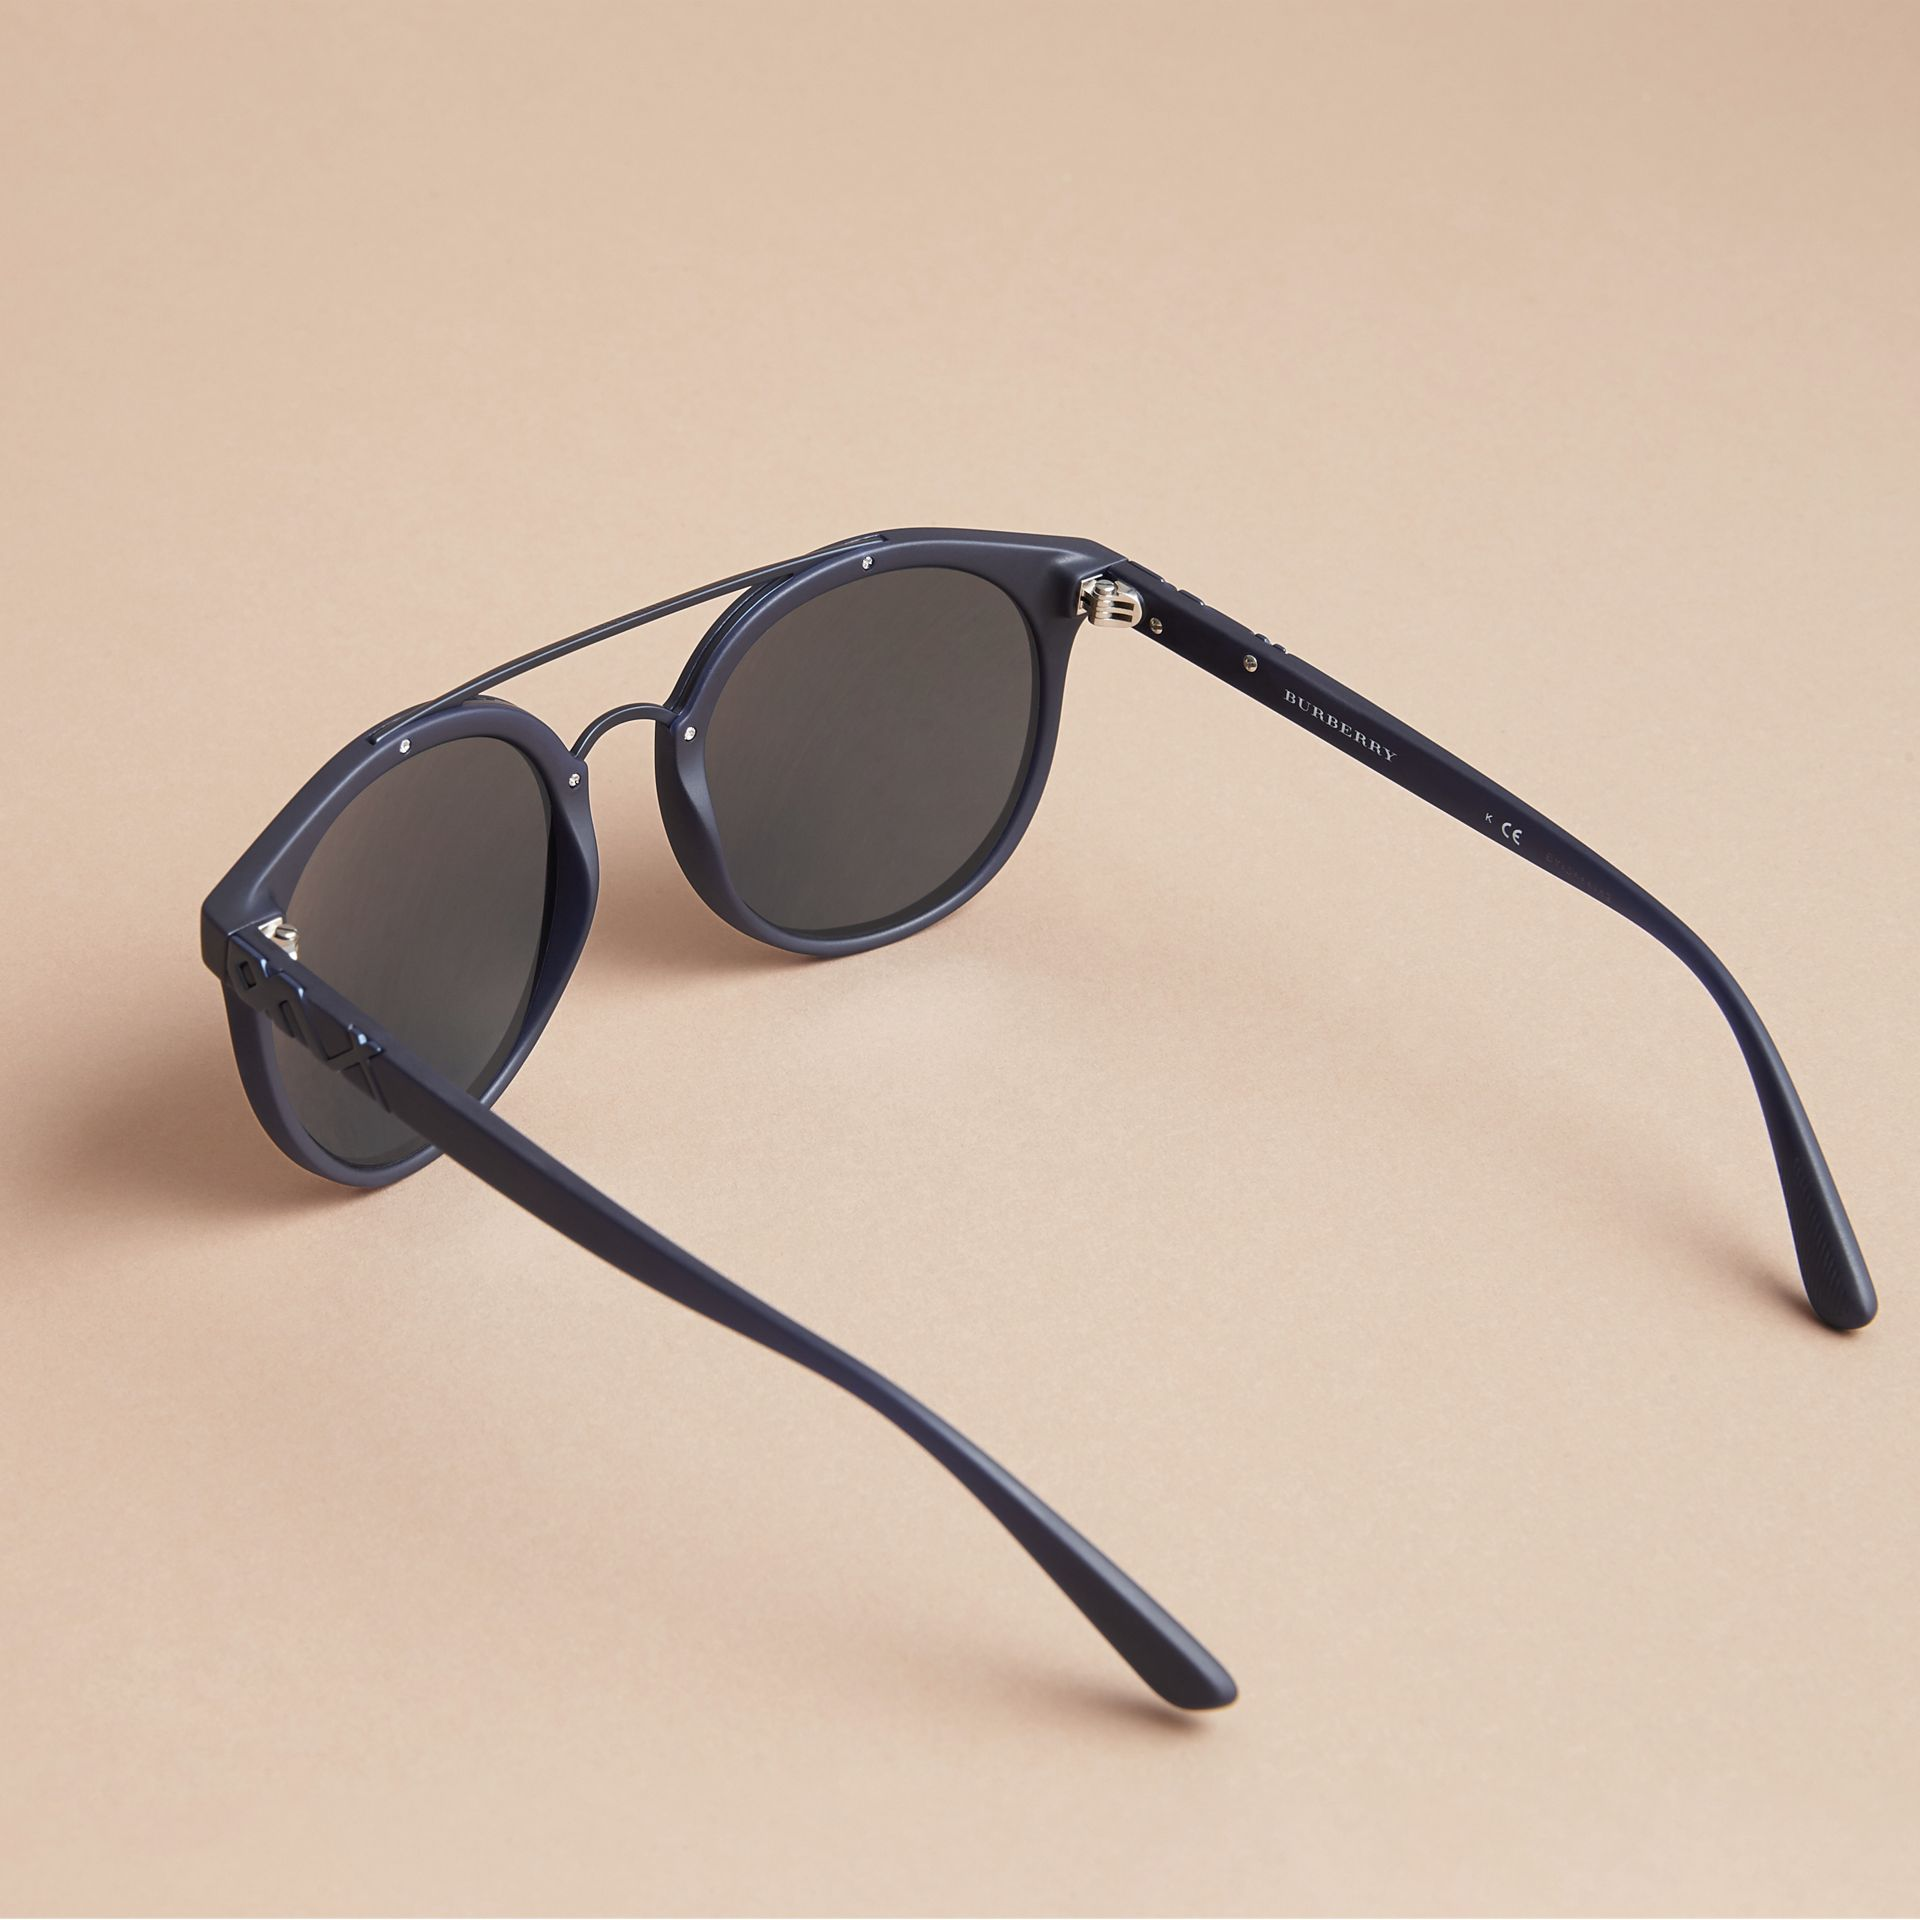 Top Bar Square Frame Sunglasses in Navy - Men | Burberry United Kingdom - gallery image 3